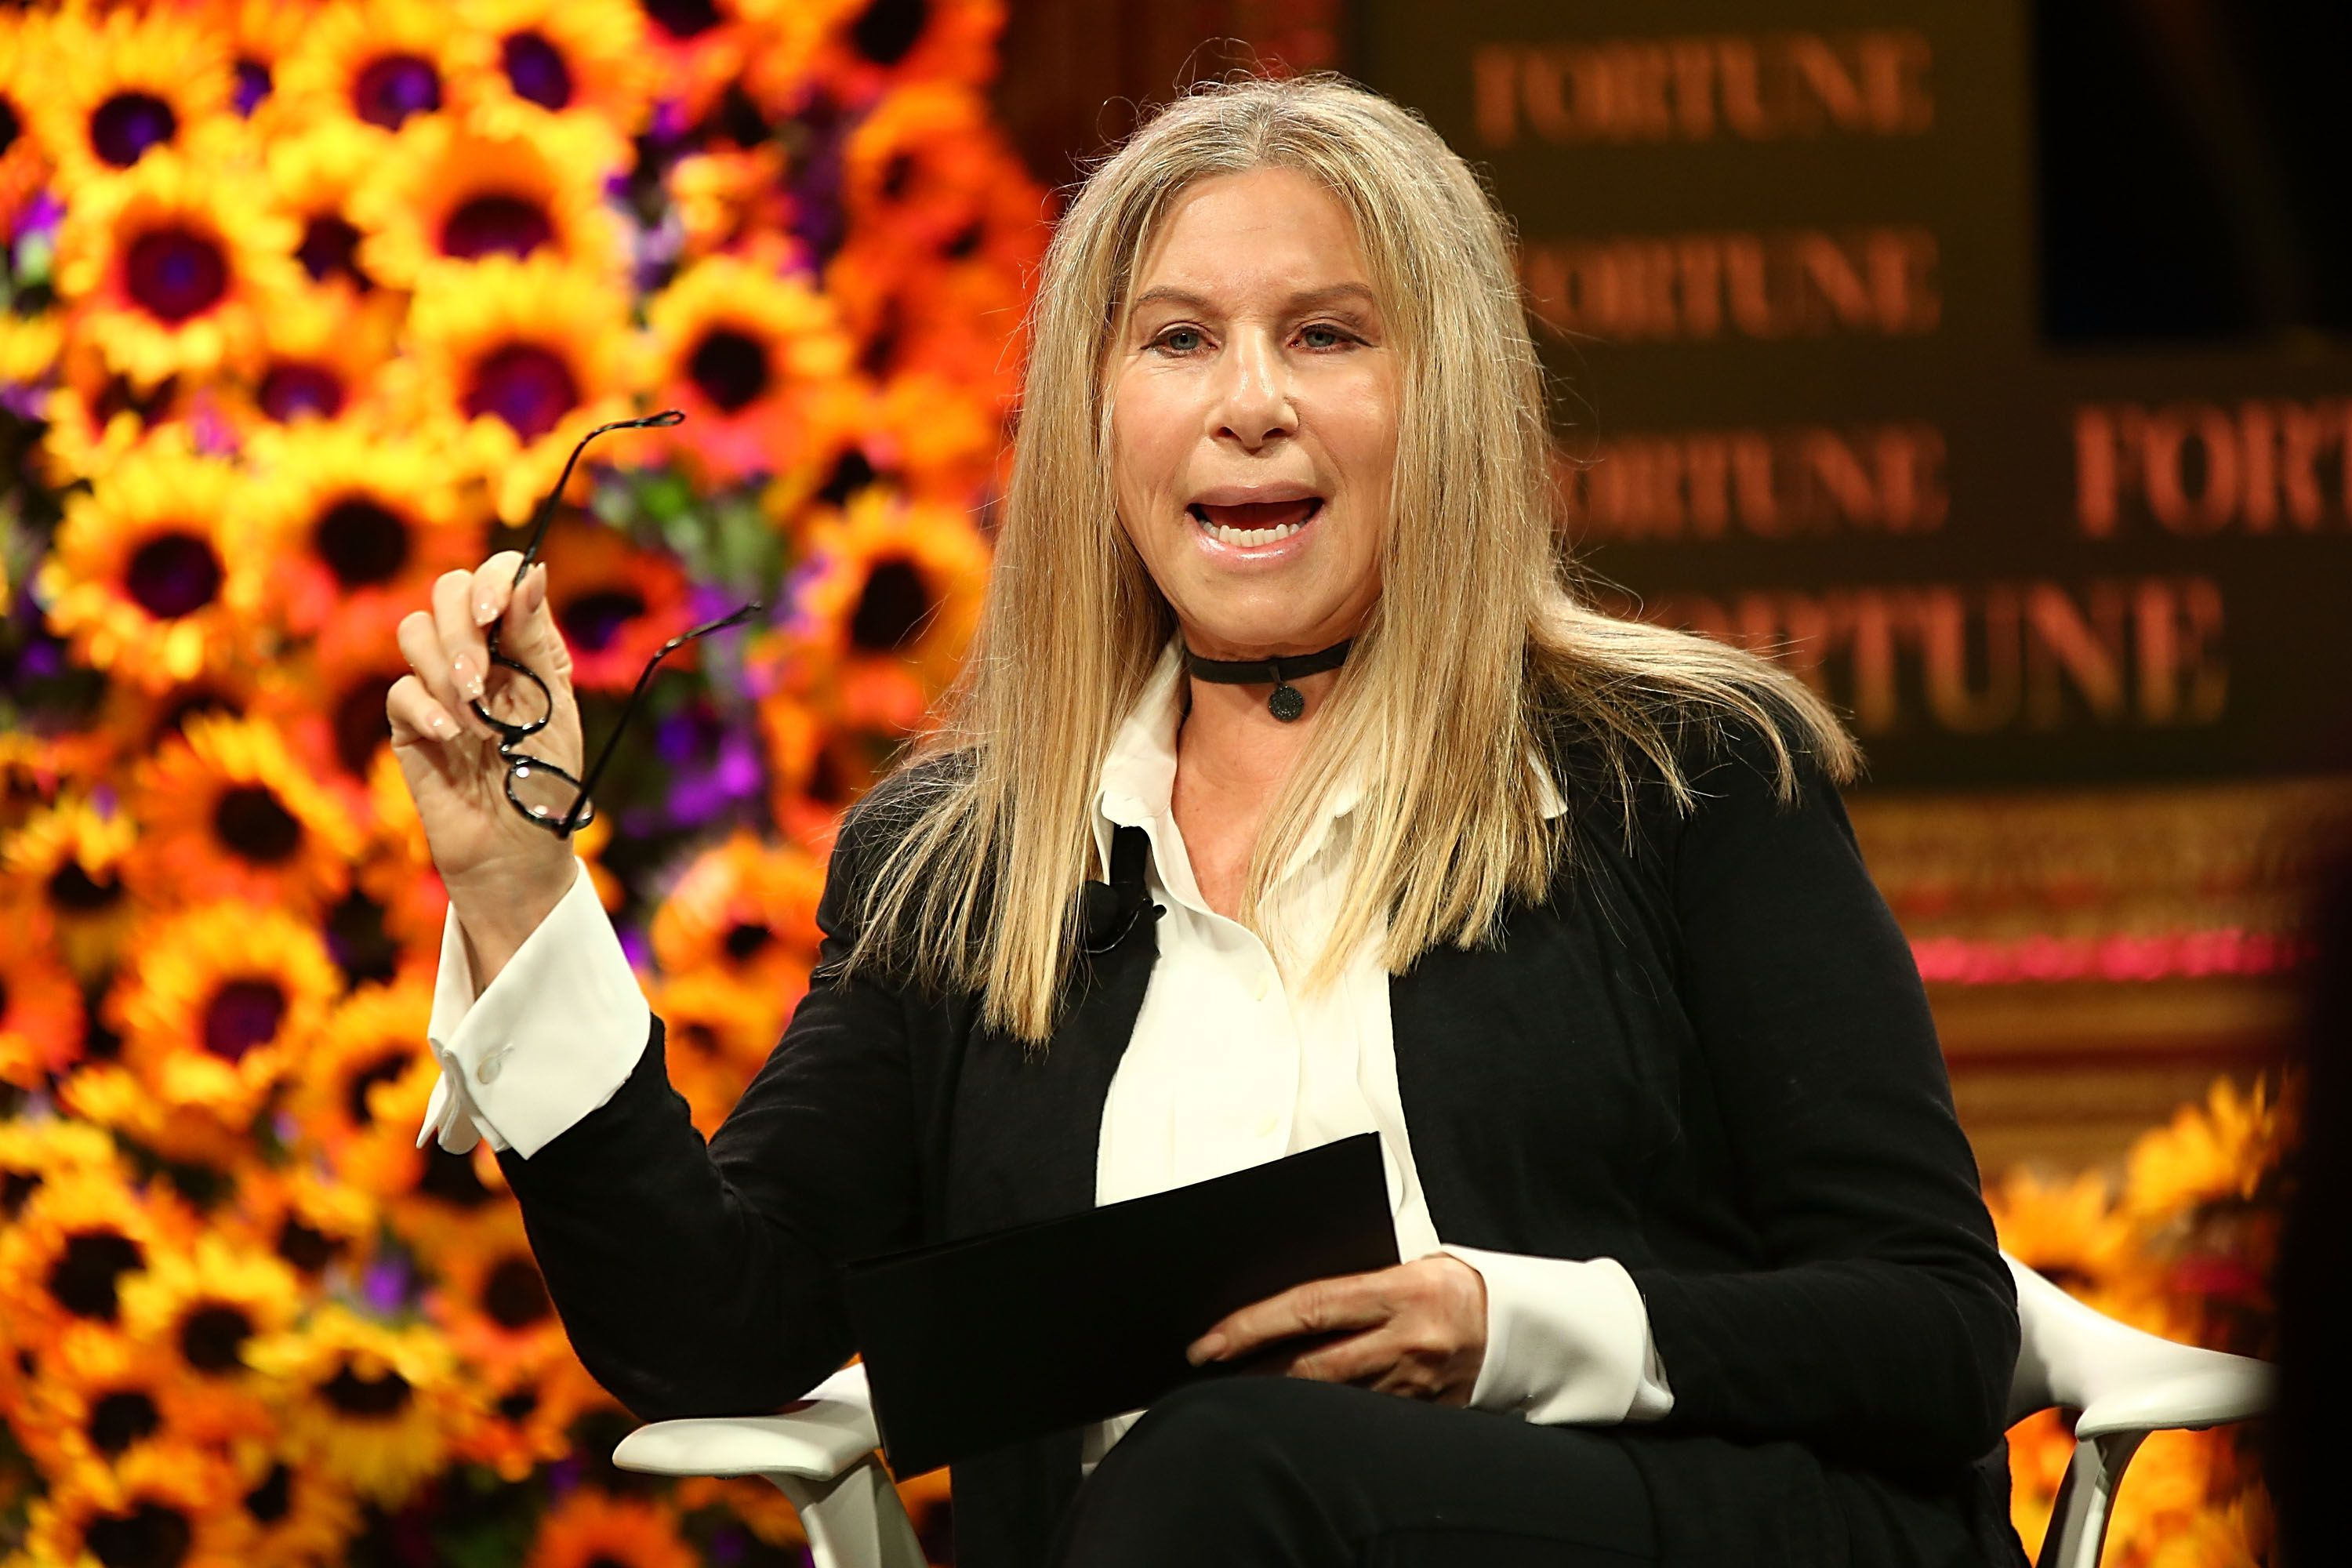 Barbara Streisand speaks onstage at the Fortune Most Powerful Women Summit 2016 at Ritz-Carlton Laguna Niguel on October 18, 2016 in Dana Point, California. | Source: Getty Images